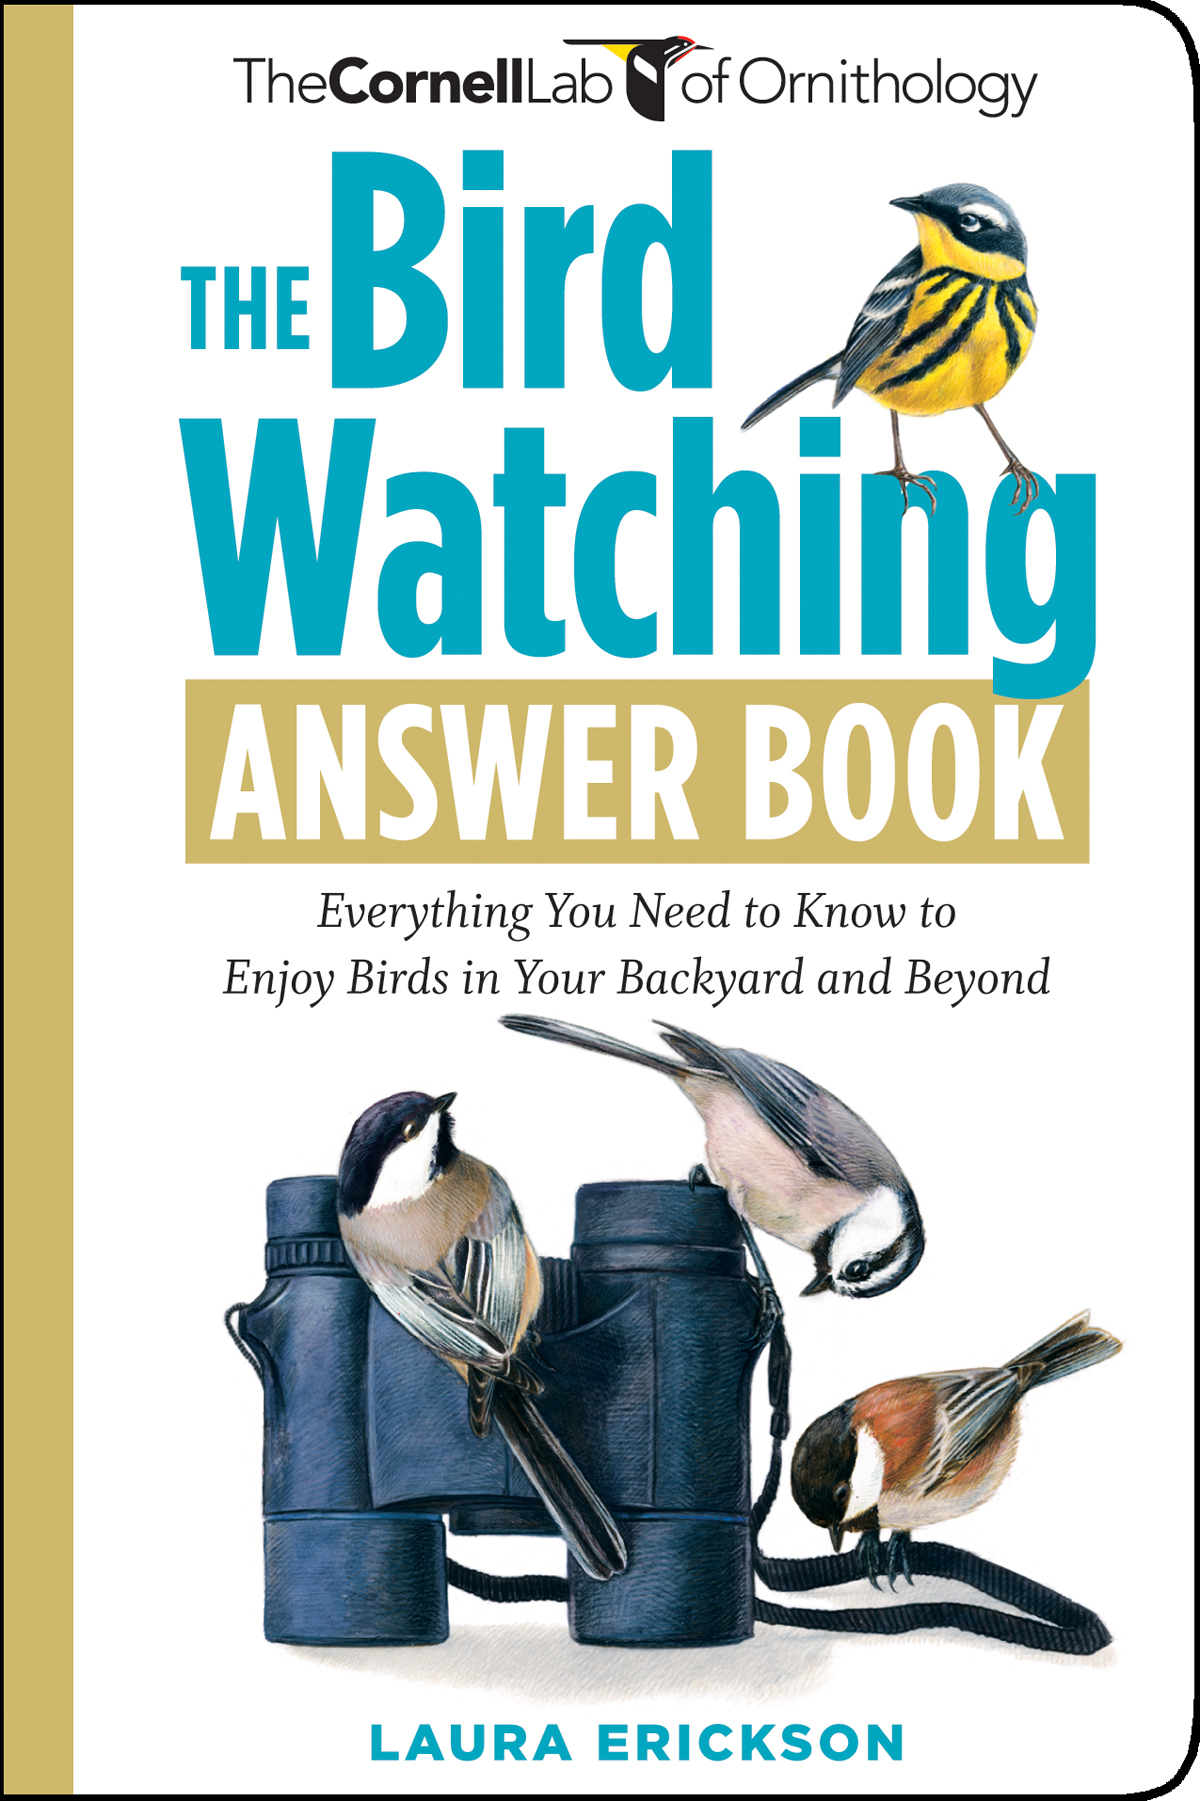 The Bird Watching Answer Book Everything You Need to Know to Enjoy Birds in Your Backyard and Beyond - Laura Erickson